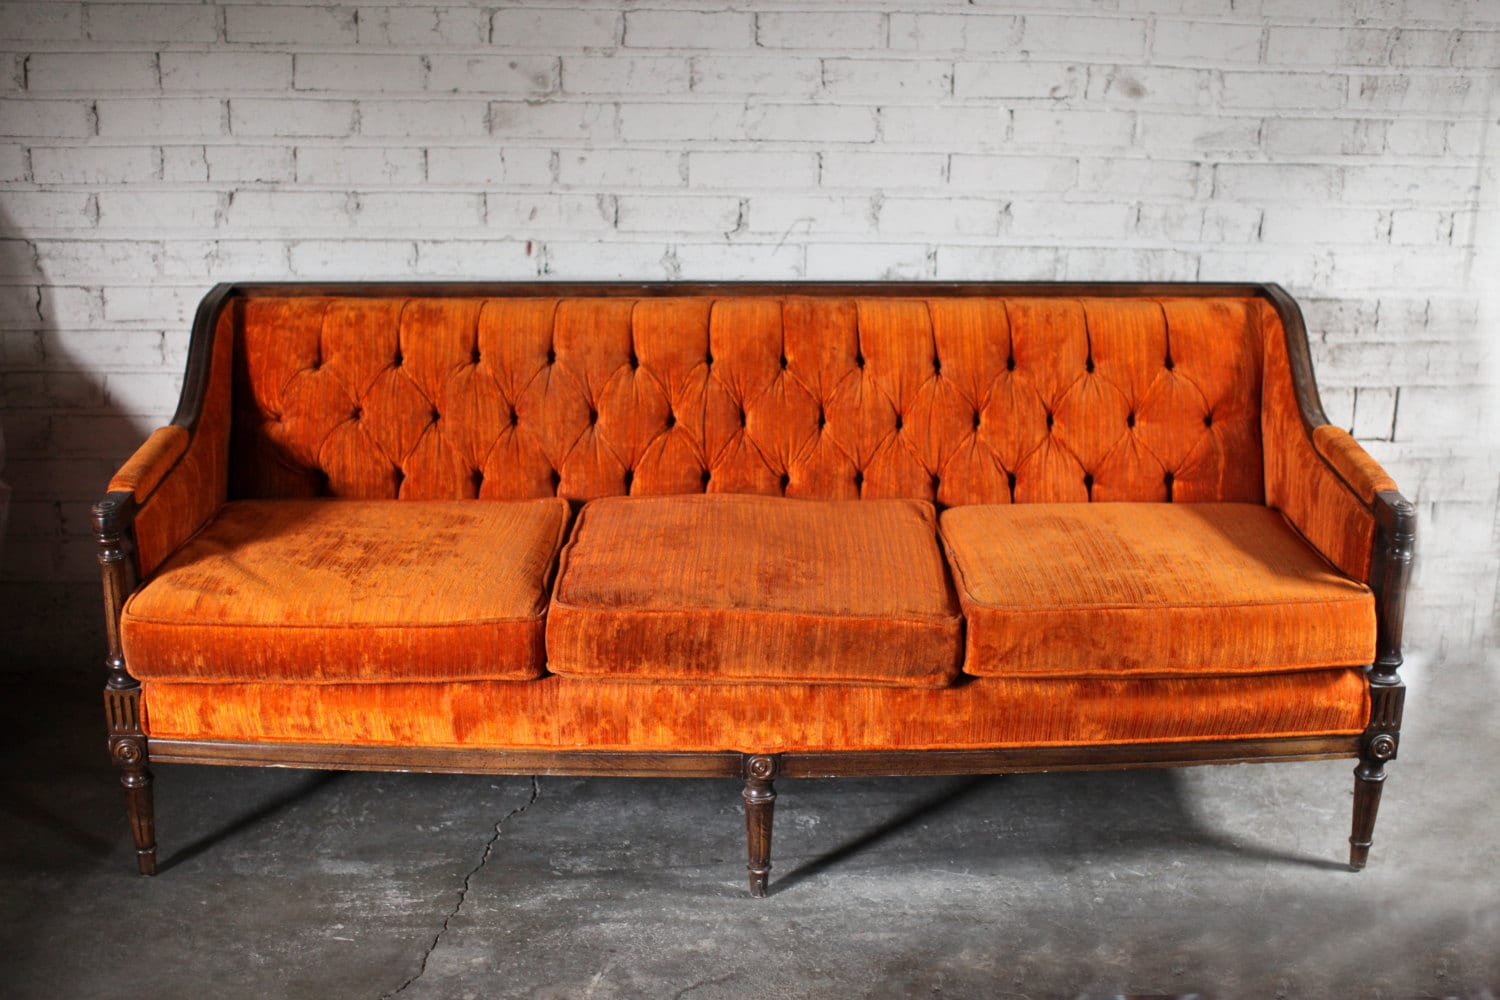 Orange Small Couch For Sale: Fall Vintage Orange Velvet Tufted Sofa Couch SALE